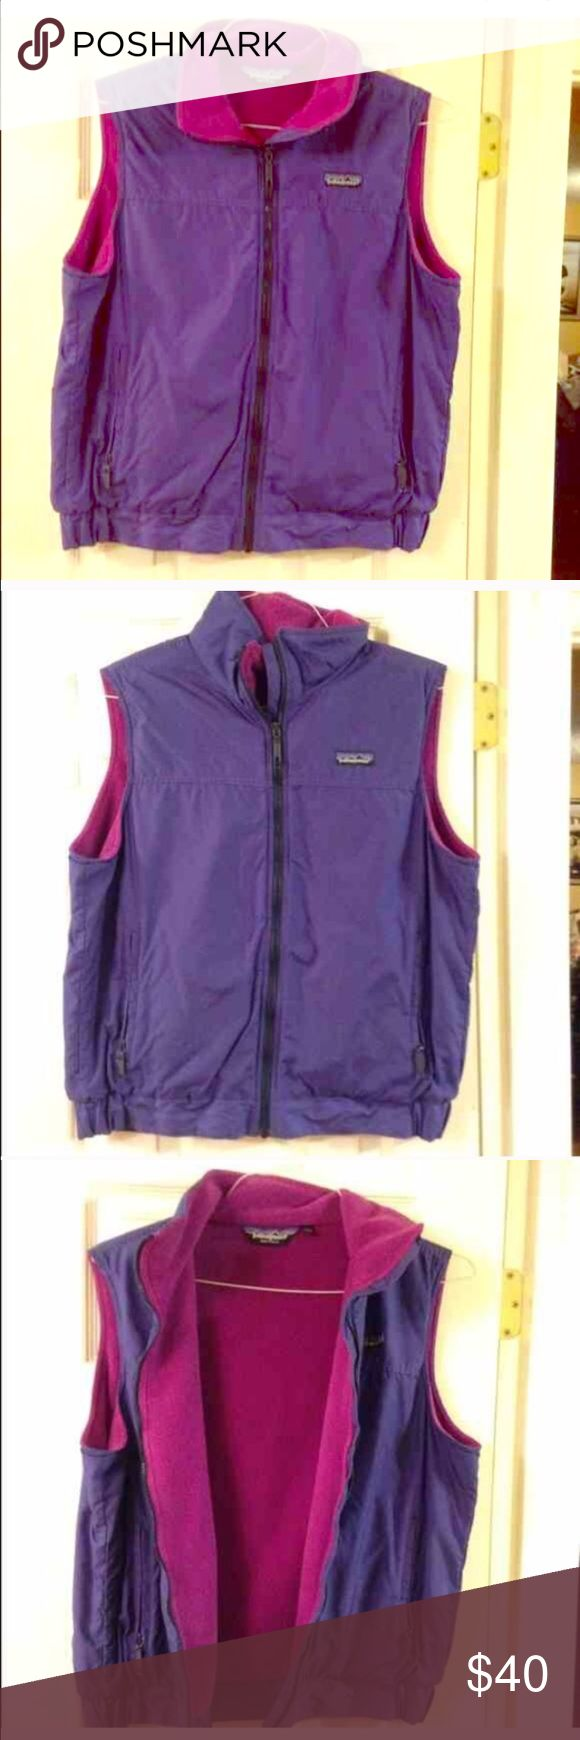 Patagonia Zip Up Vest Pink/purple Girls Size 12 Patagonia vest. This fits a women's small/medium. Gently used. Patagonia Jackets & Coats Vests